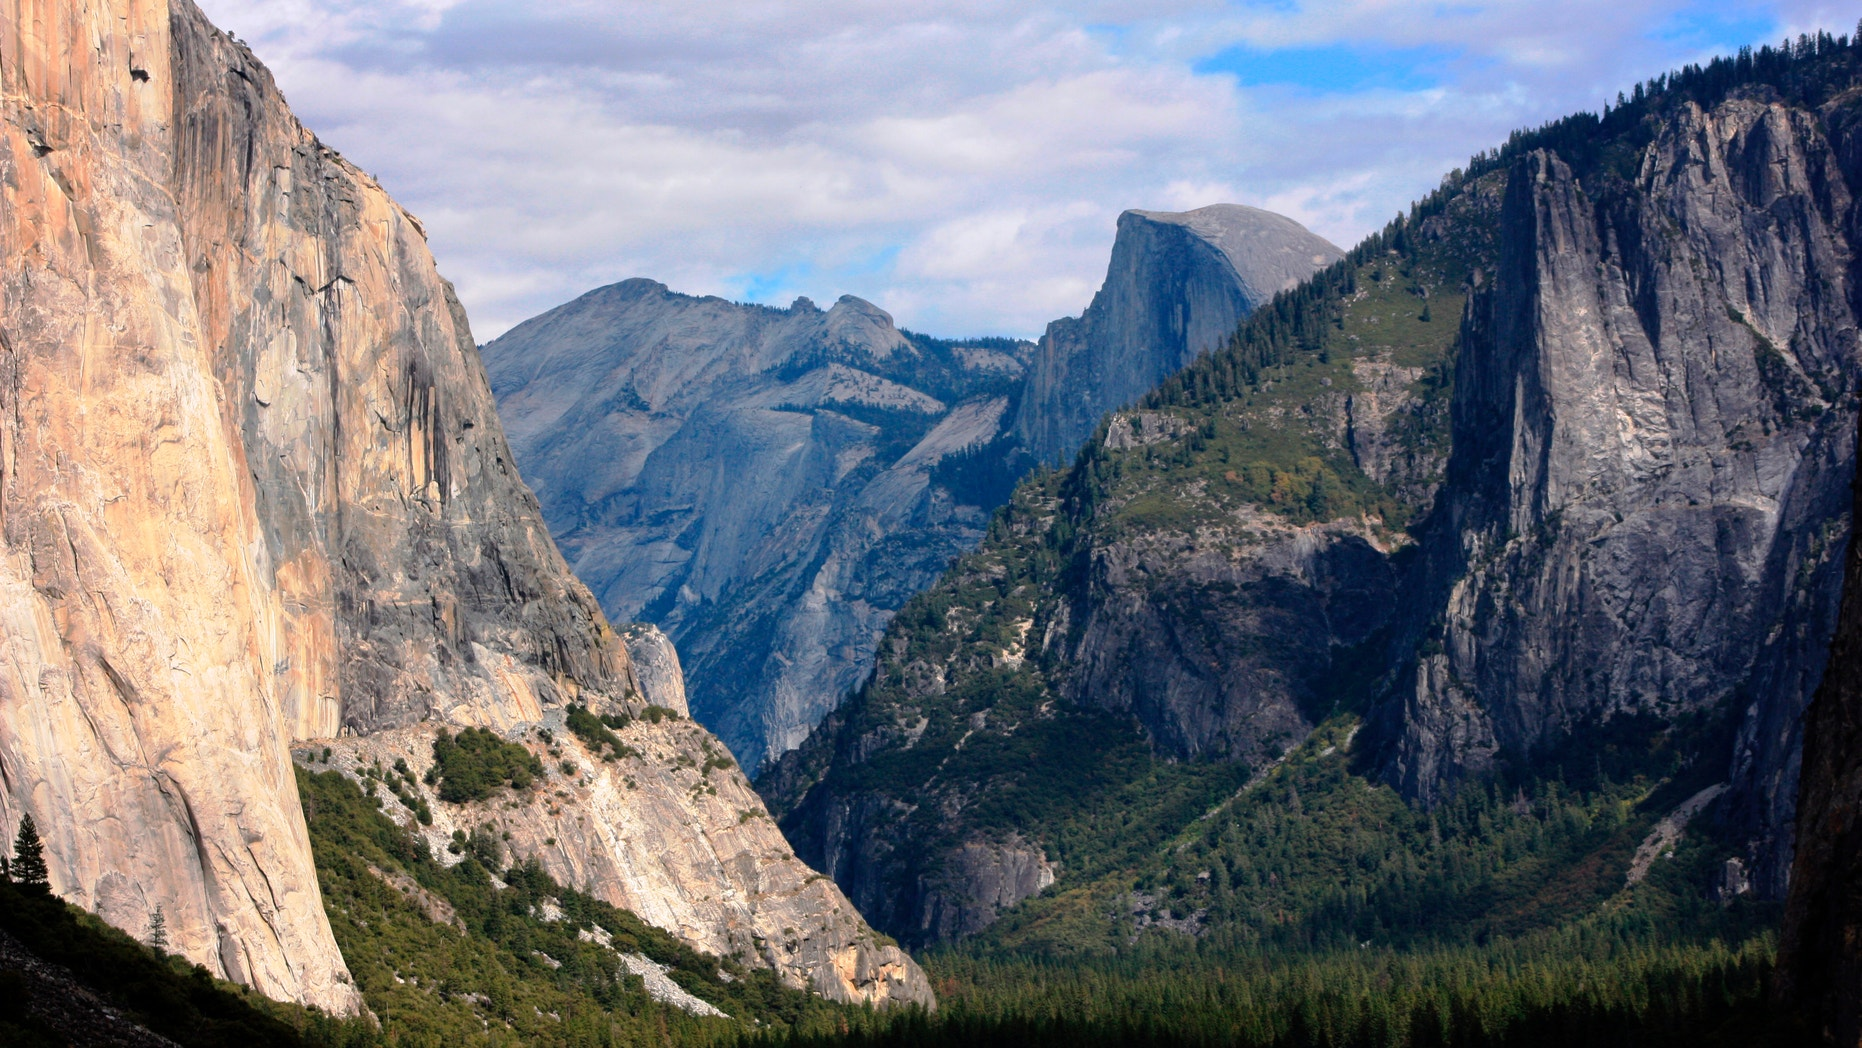 Oct. 2, 2013: A view seen on the way to Glacier Point trail in the Yosemite National Park, Calif.